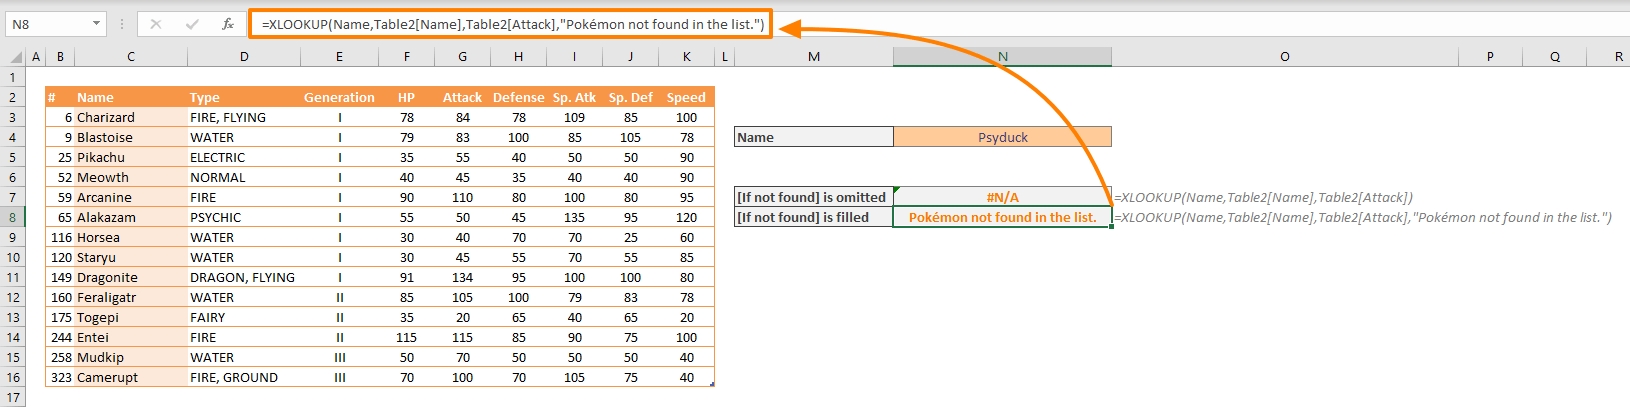 XLOOKUP Function - Not Found